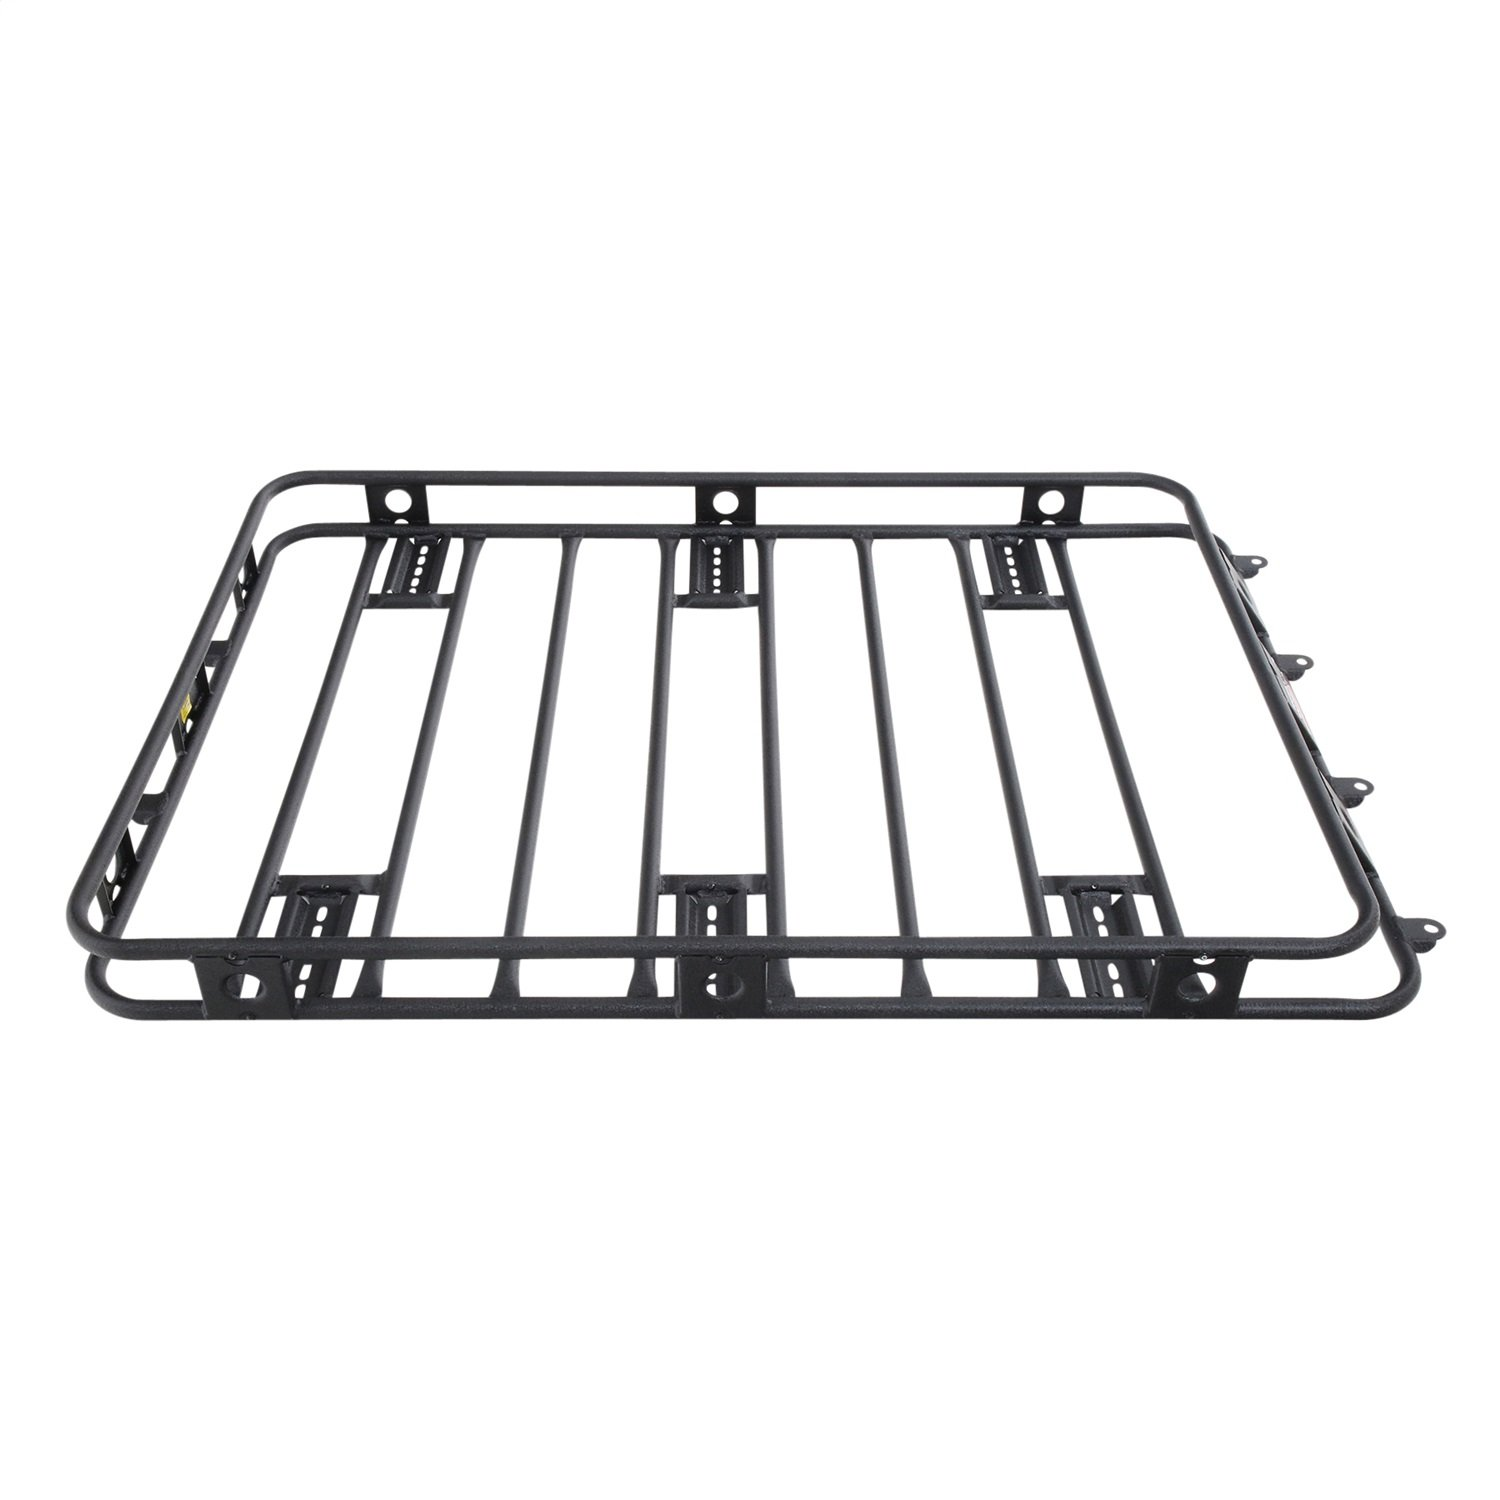 Smittybilt 35504 Roof Rack